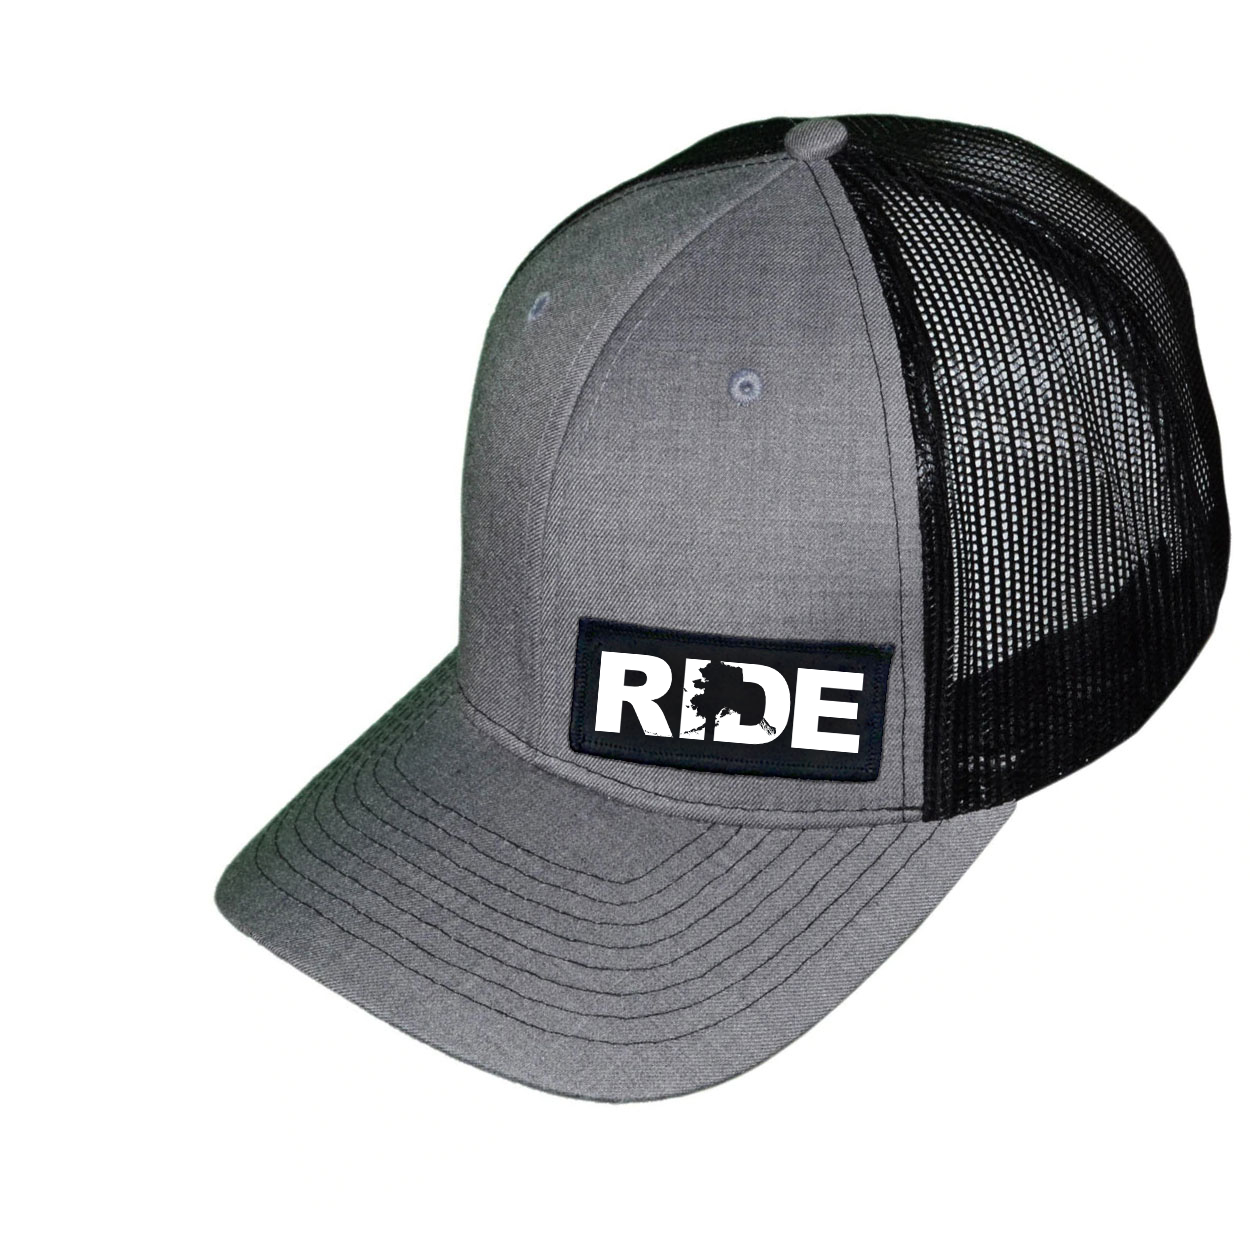 Ride Alaska Night Out Woven Patch Snapback Trucker Hat Heather Gray/Black (White Logo)